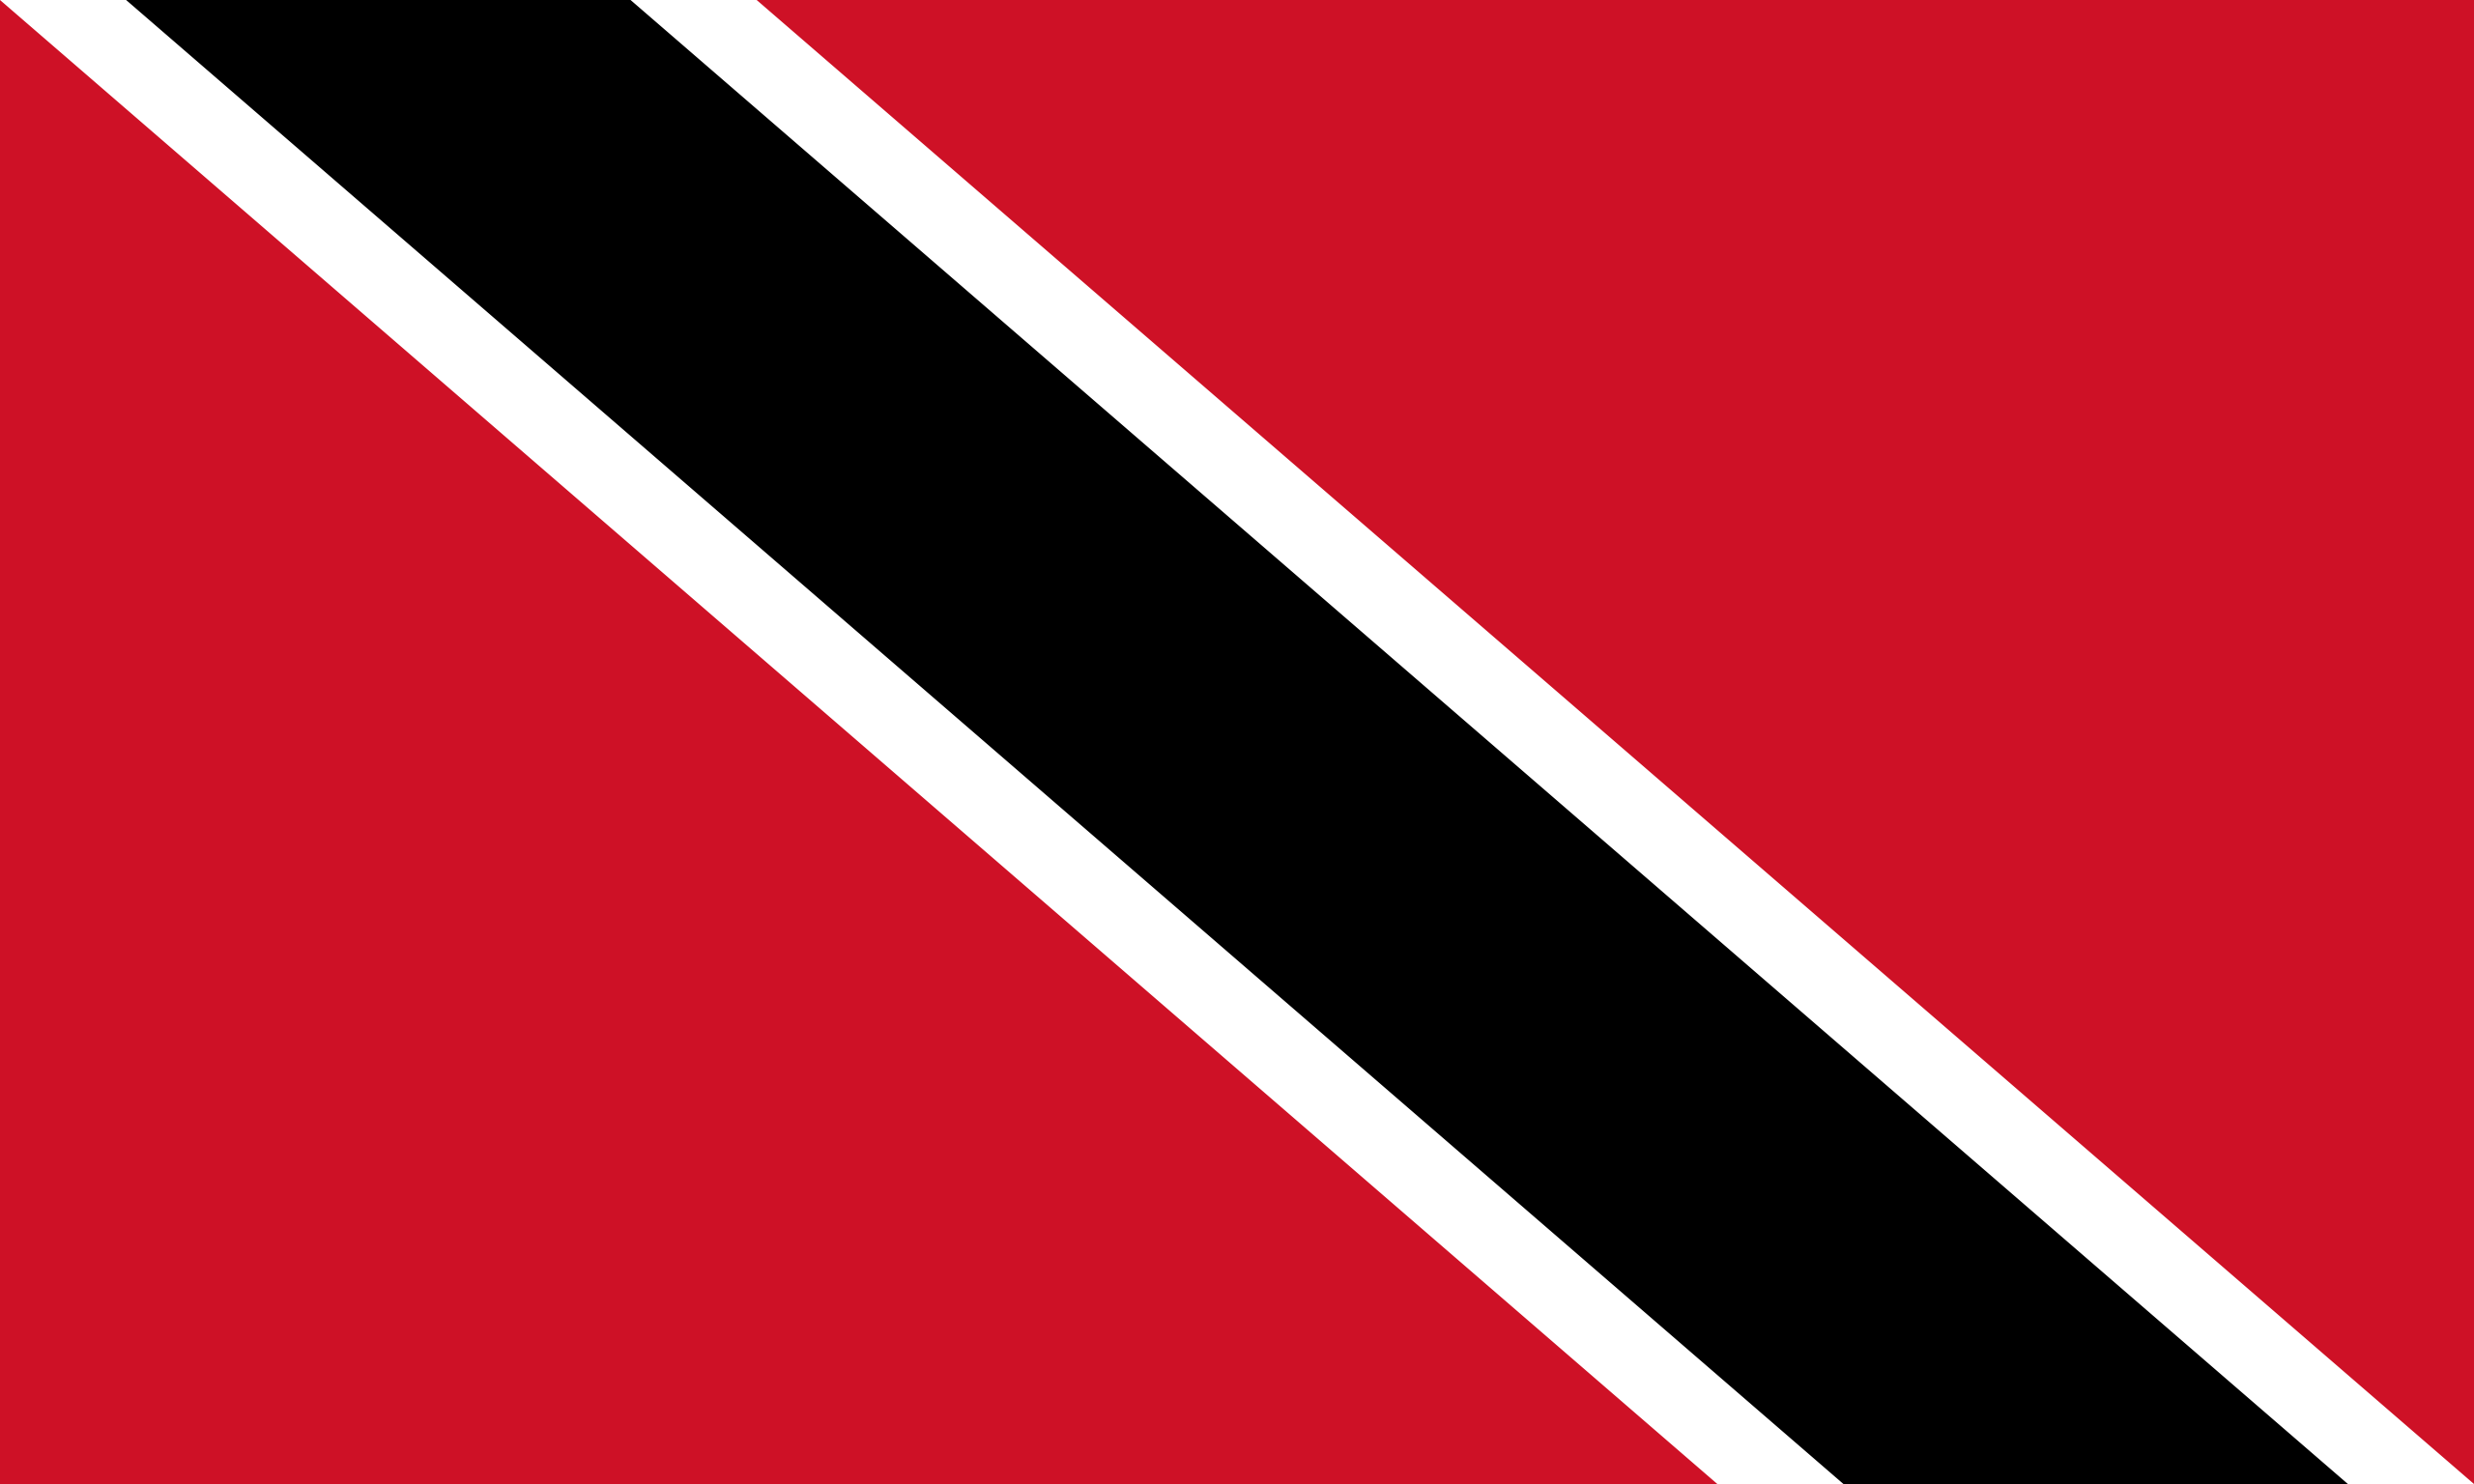 EMBASSY AND CONSULATE OF TRINIDAD AND TOBAGO